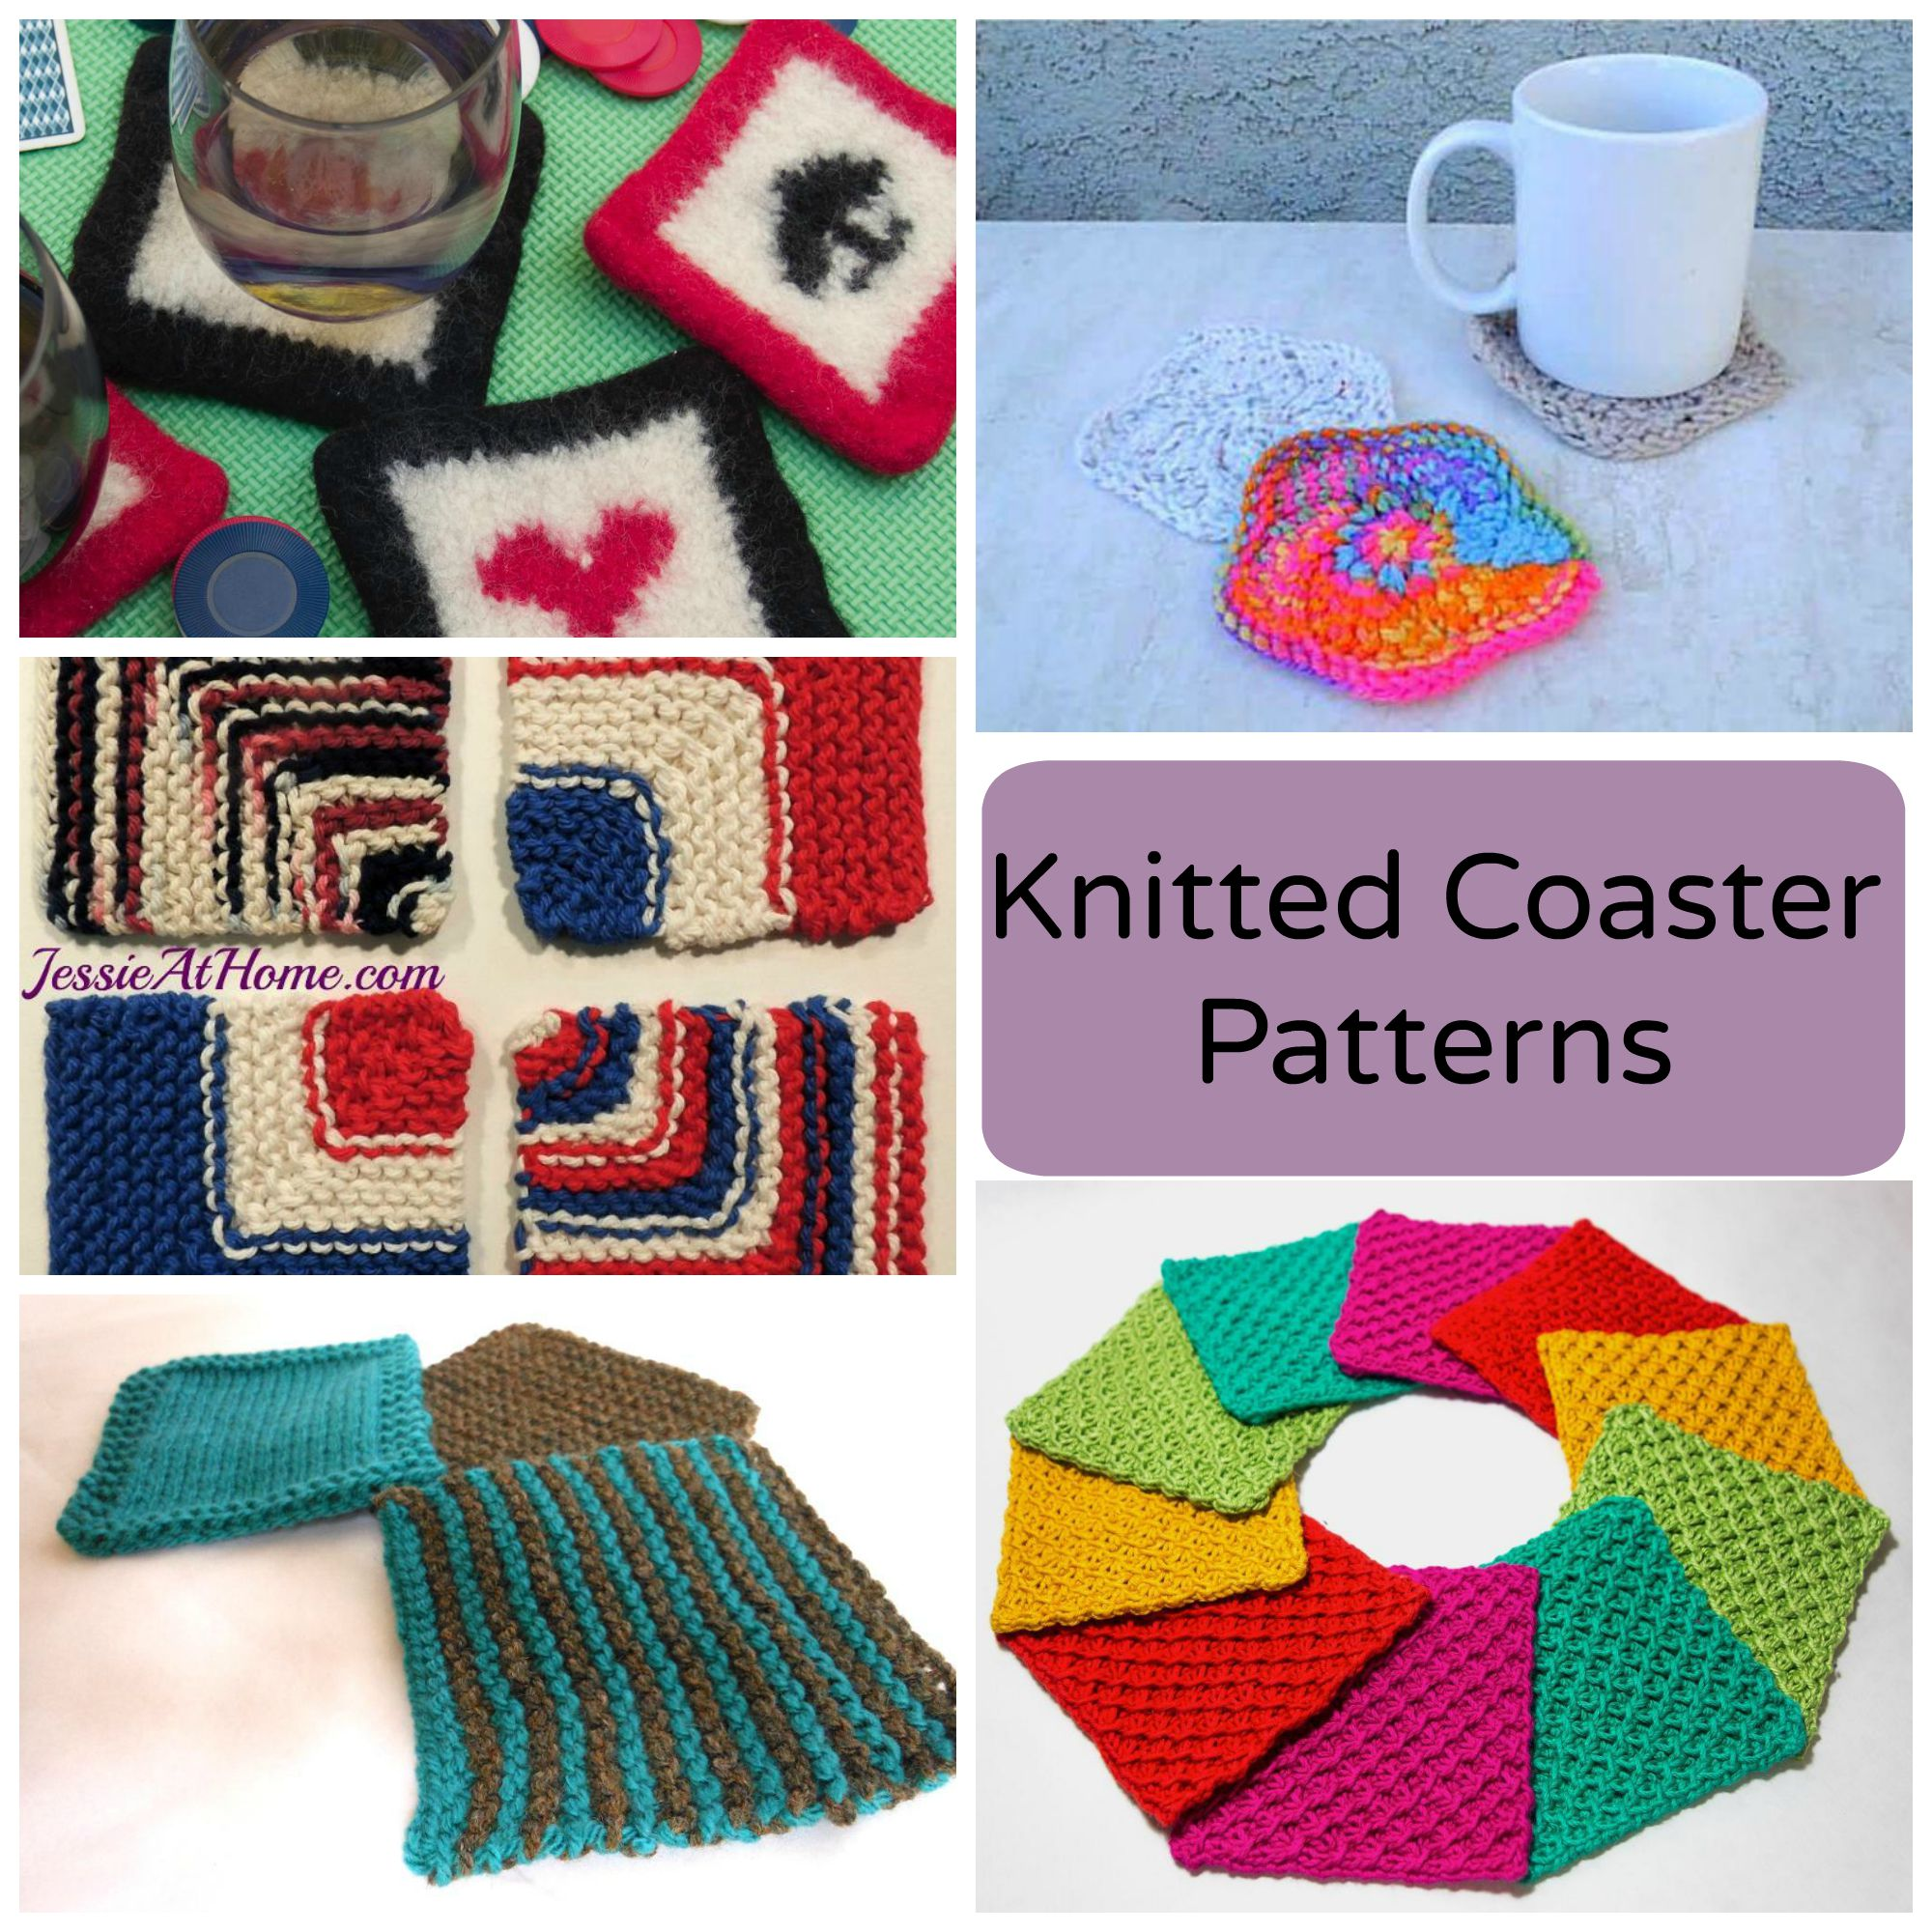 Knitted Coaster Patterns